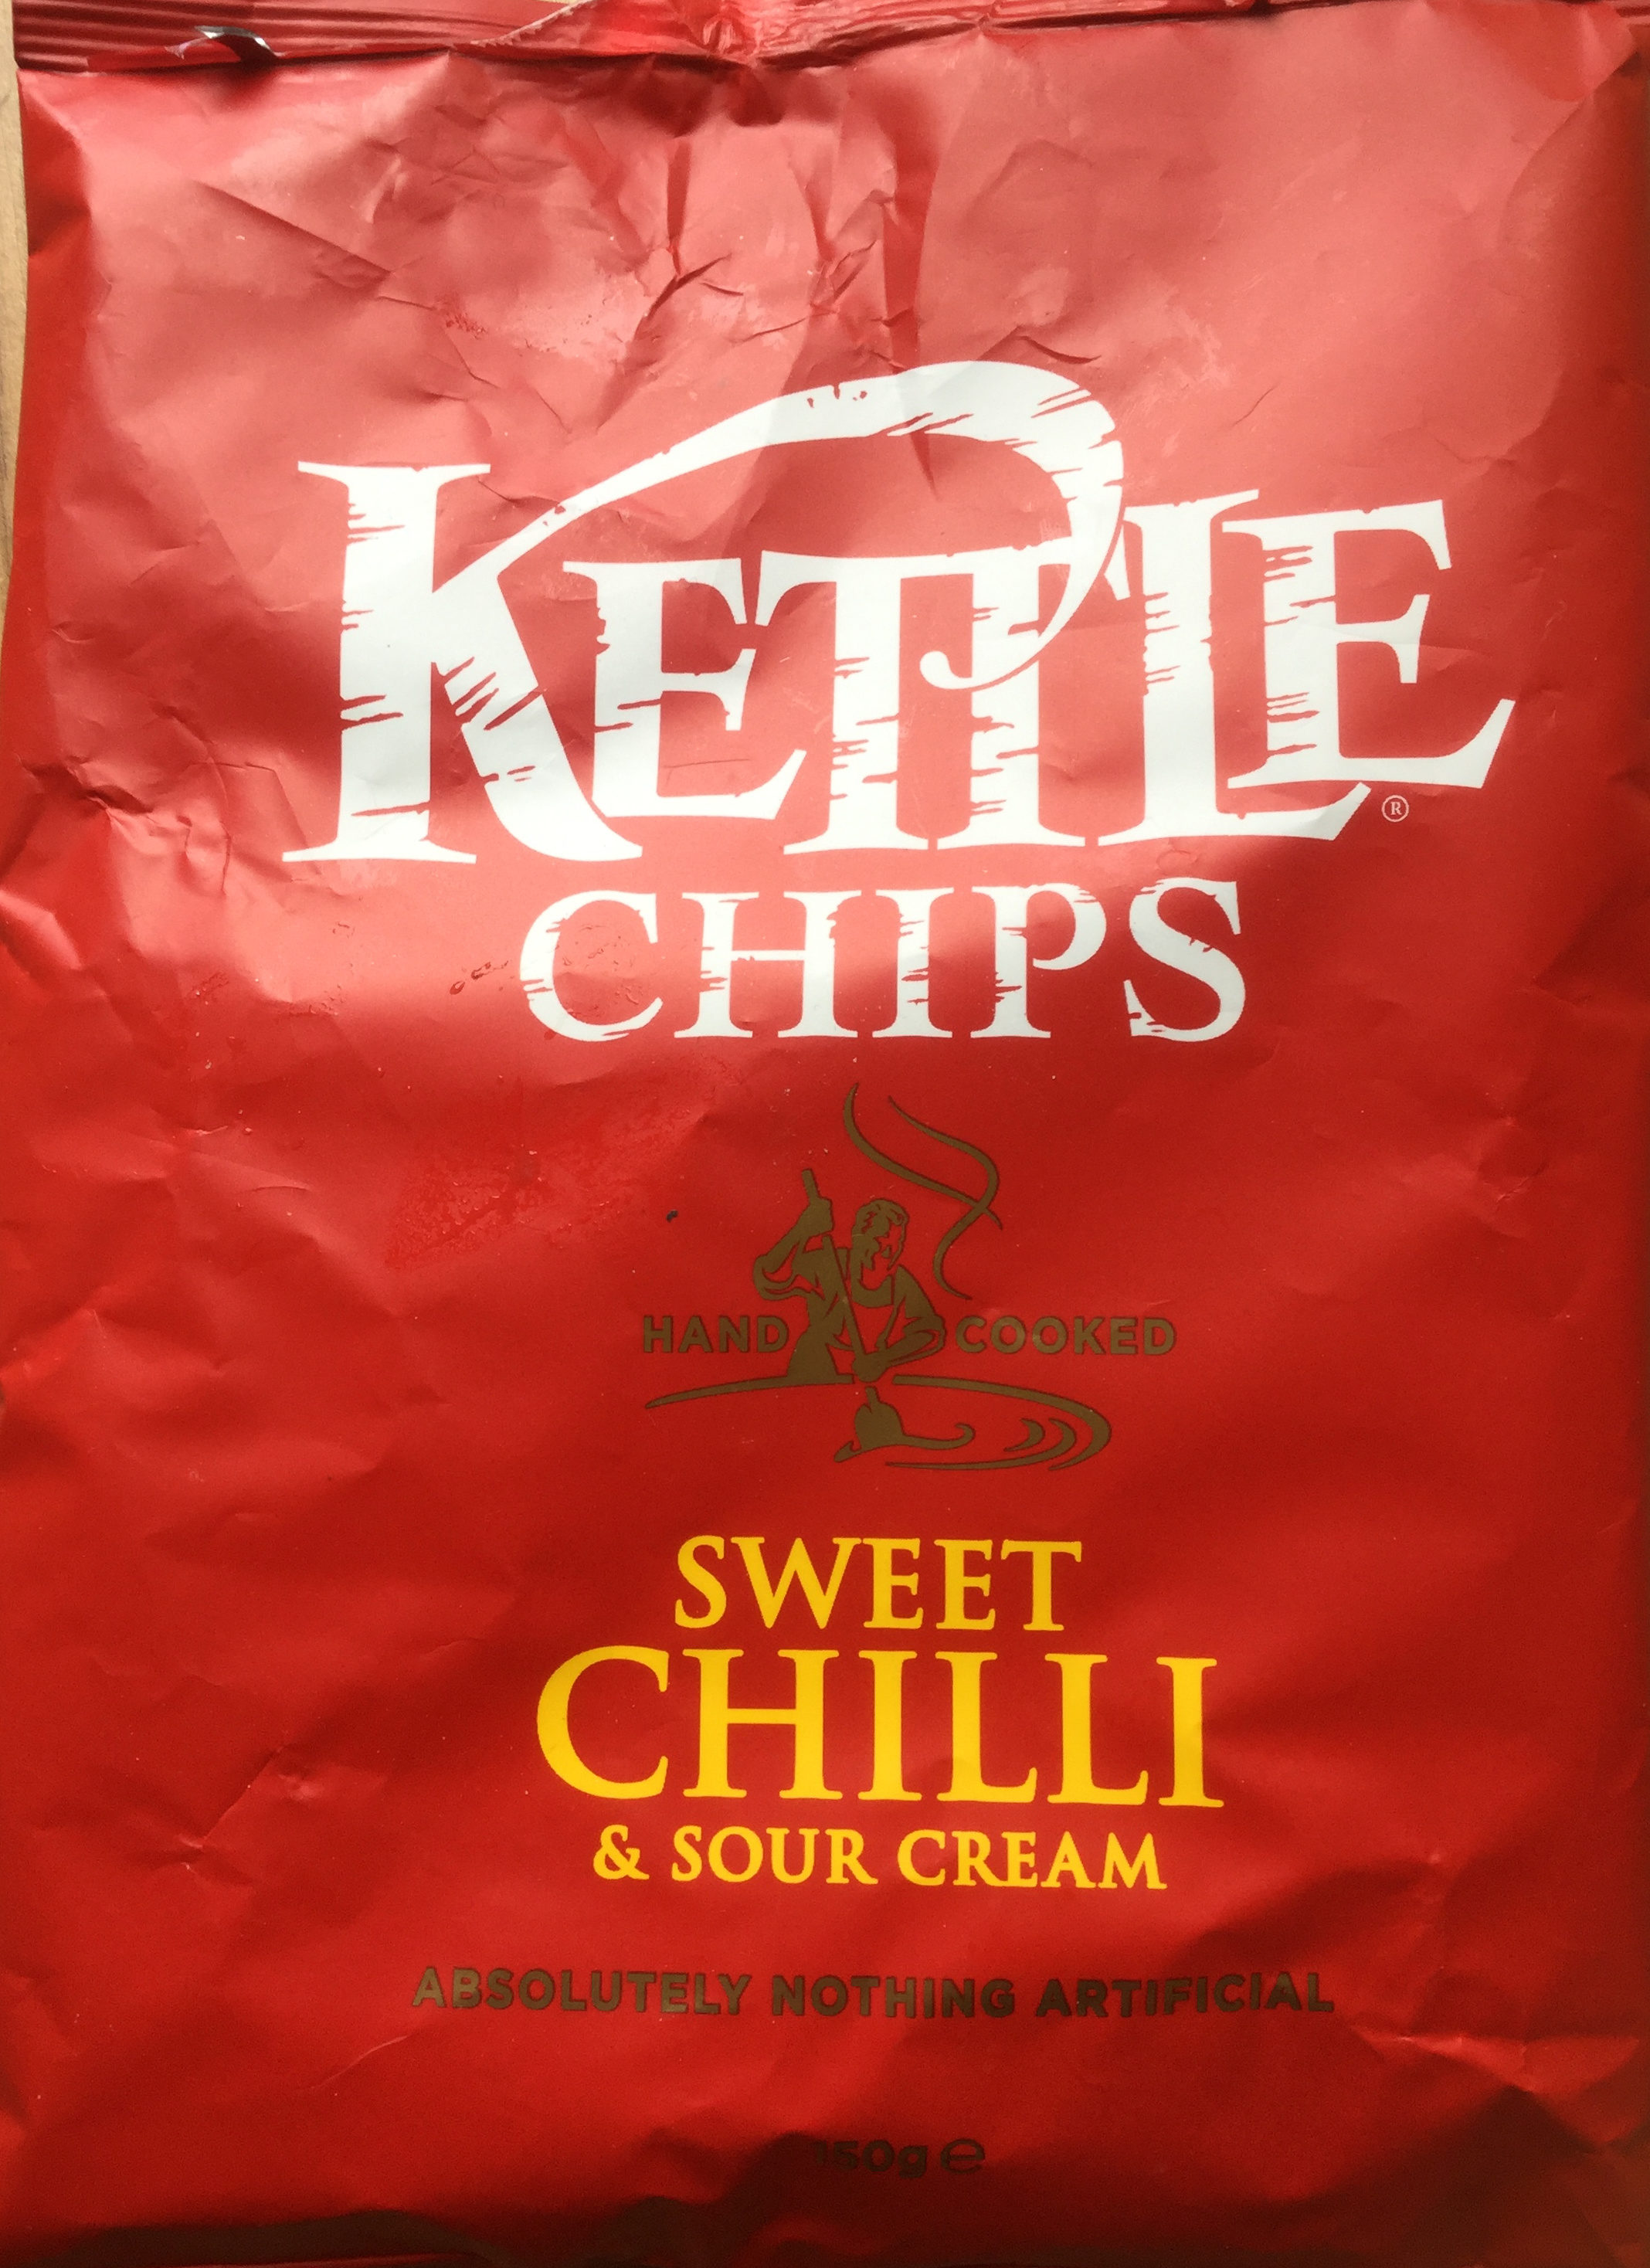 Sweet chili & sour cream - Product